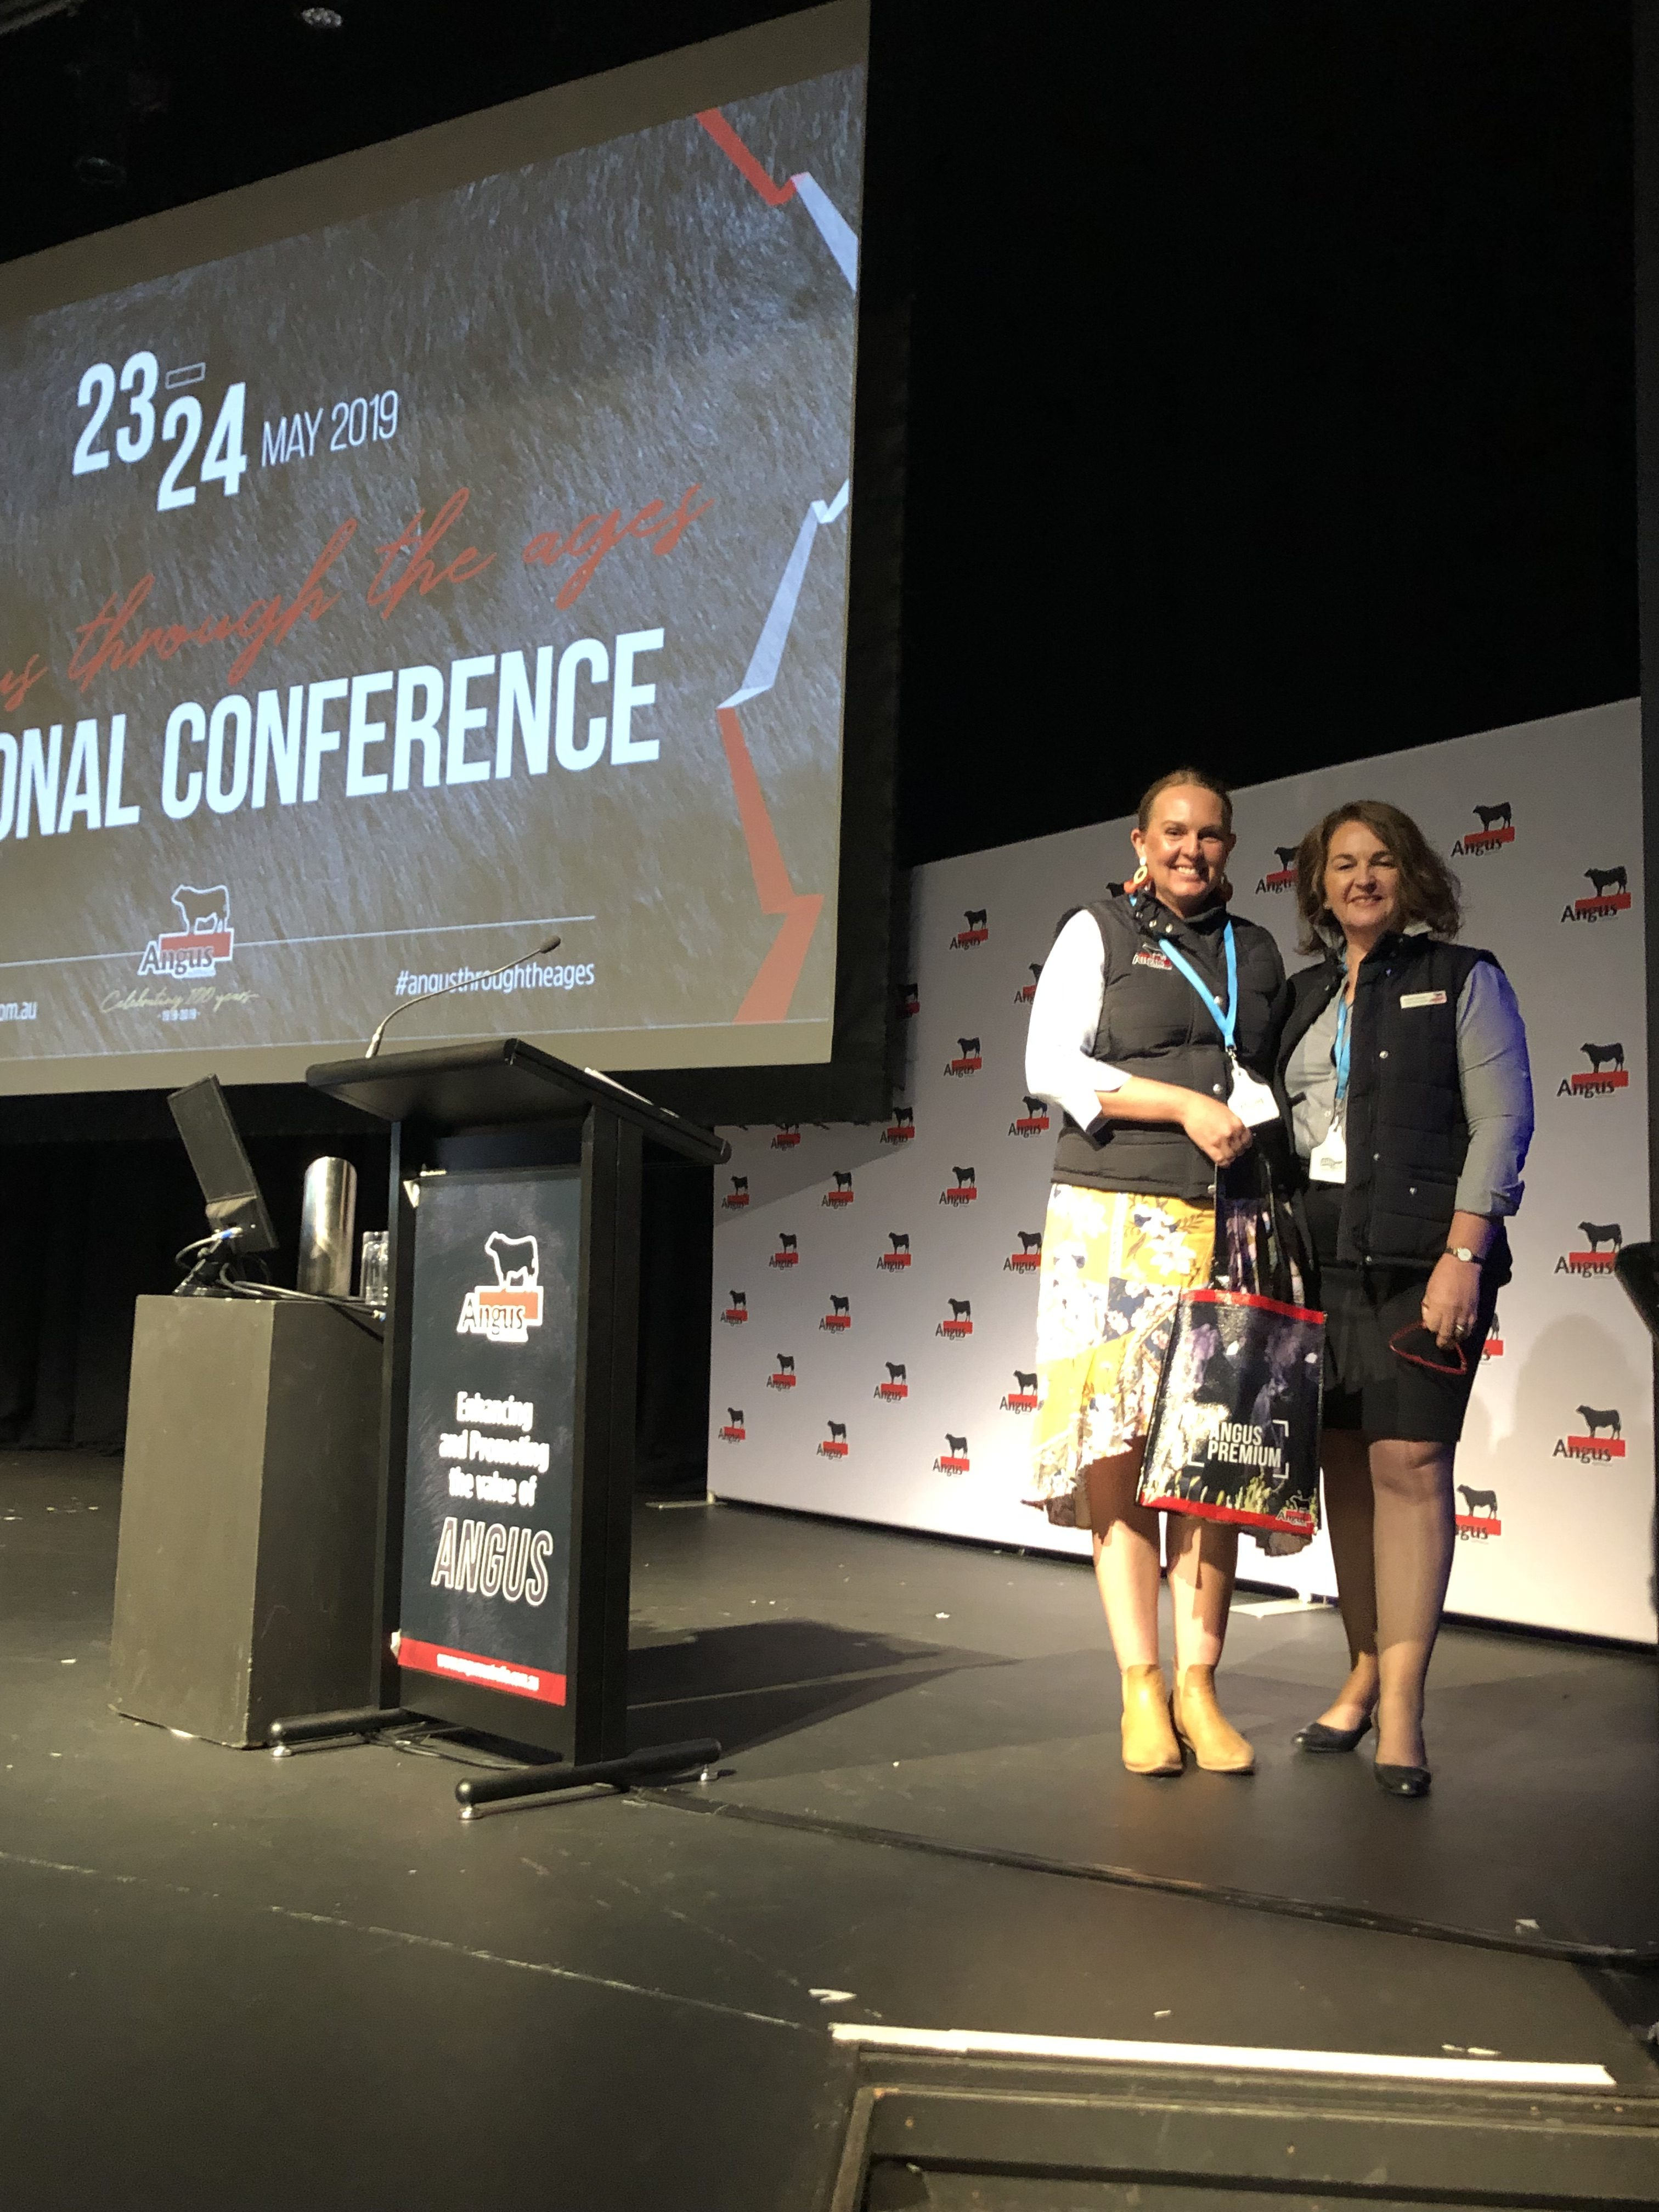 Robyn Brazier with Diana Wood, Marketing and Communications Manager, Angus Australia